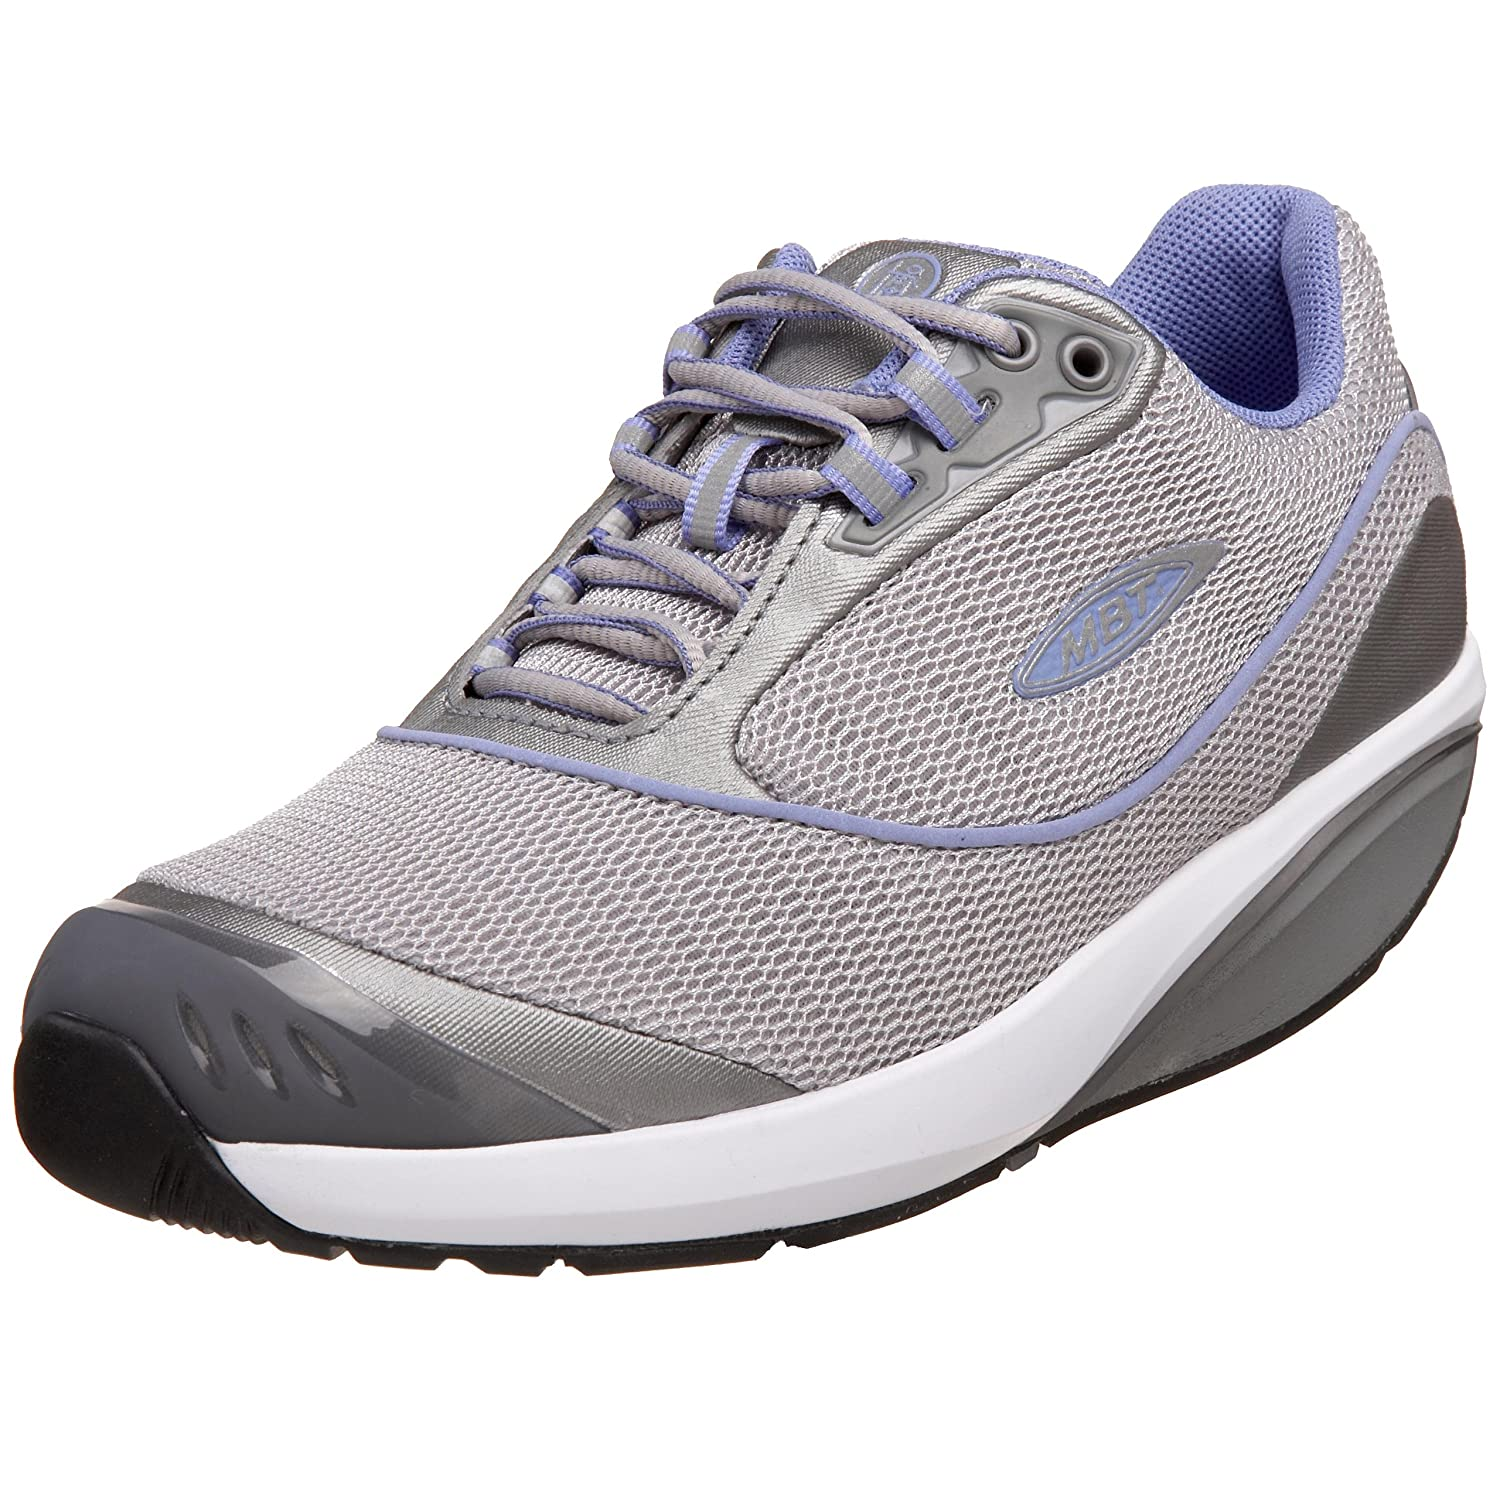 MBT Women's Fora Silver Athletic Walking Shoes at Sears.com